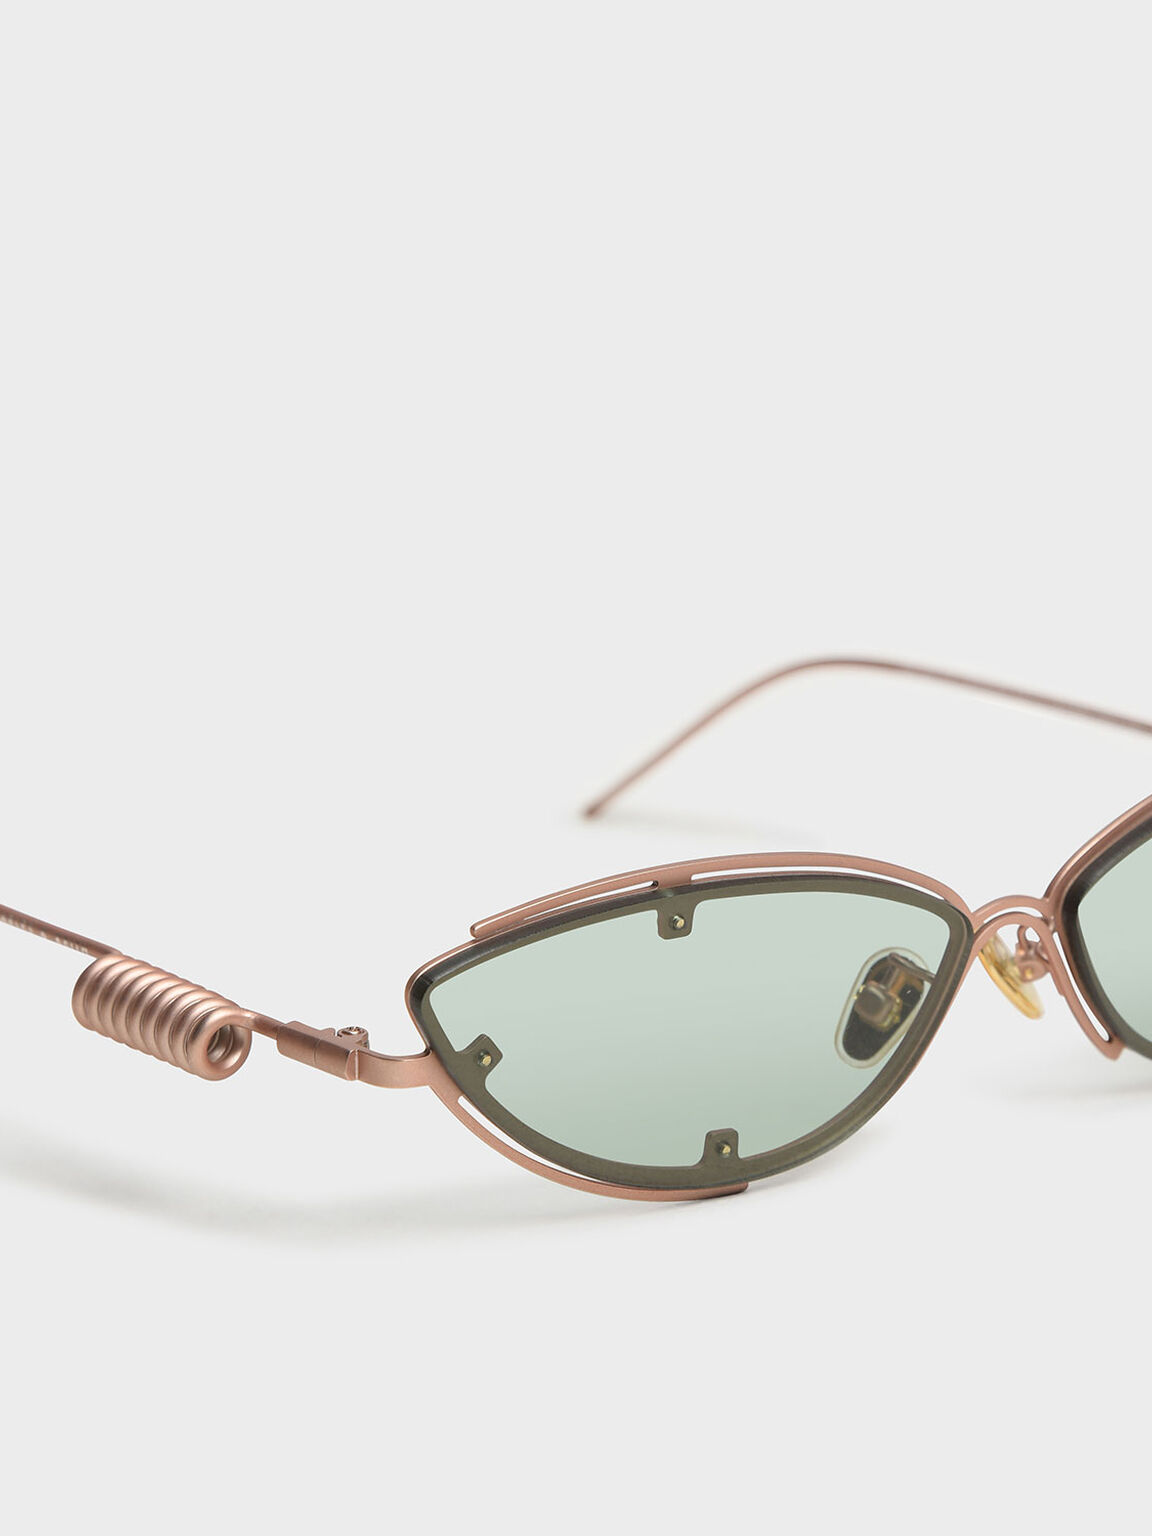 Double Frame Cat-Eye Sunglasses, Green, hi-res